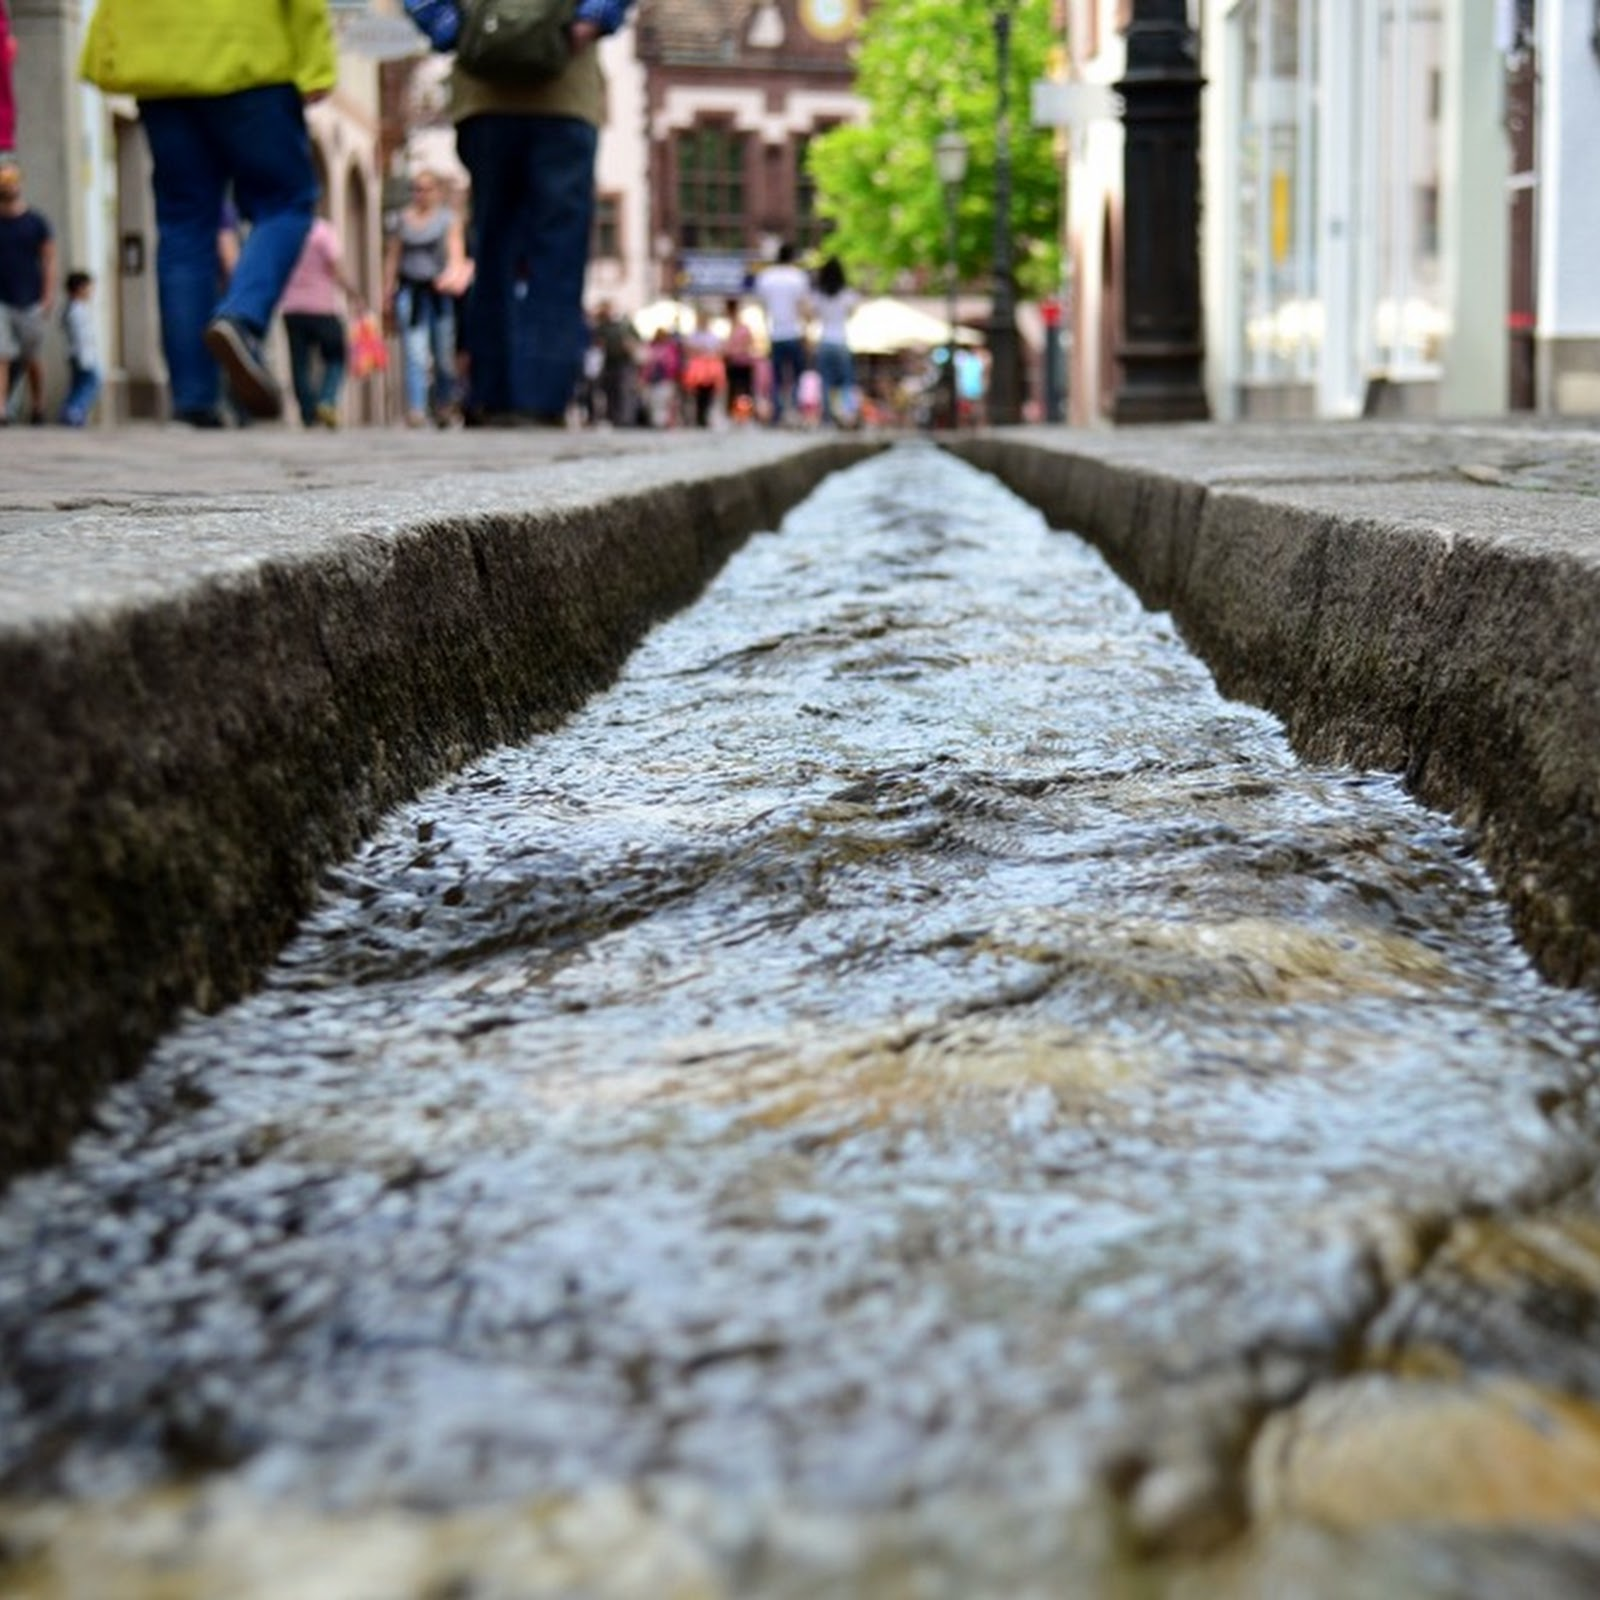 The Bächle of Freiburg: The Mediaeval Gutters That Became Recreational Hotspots